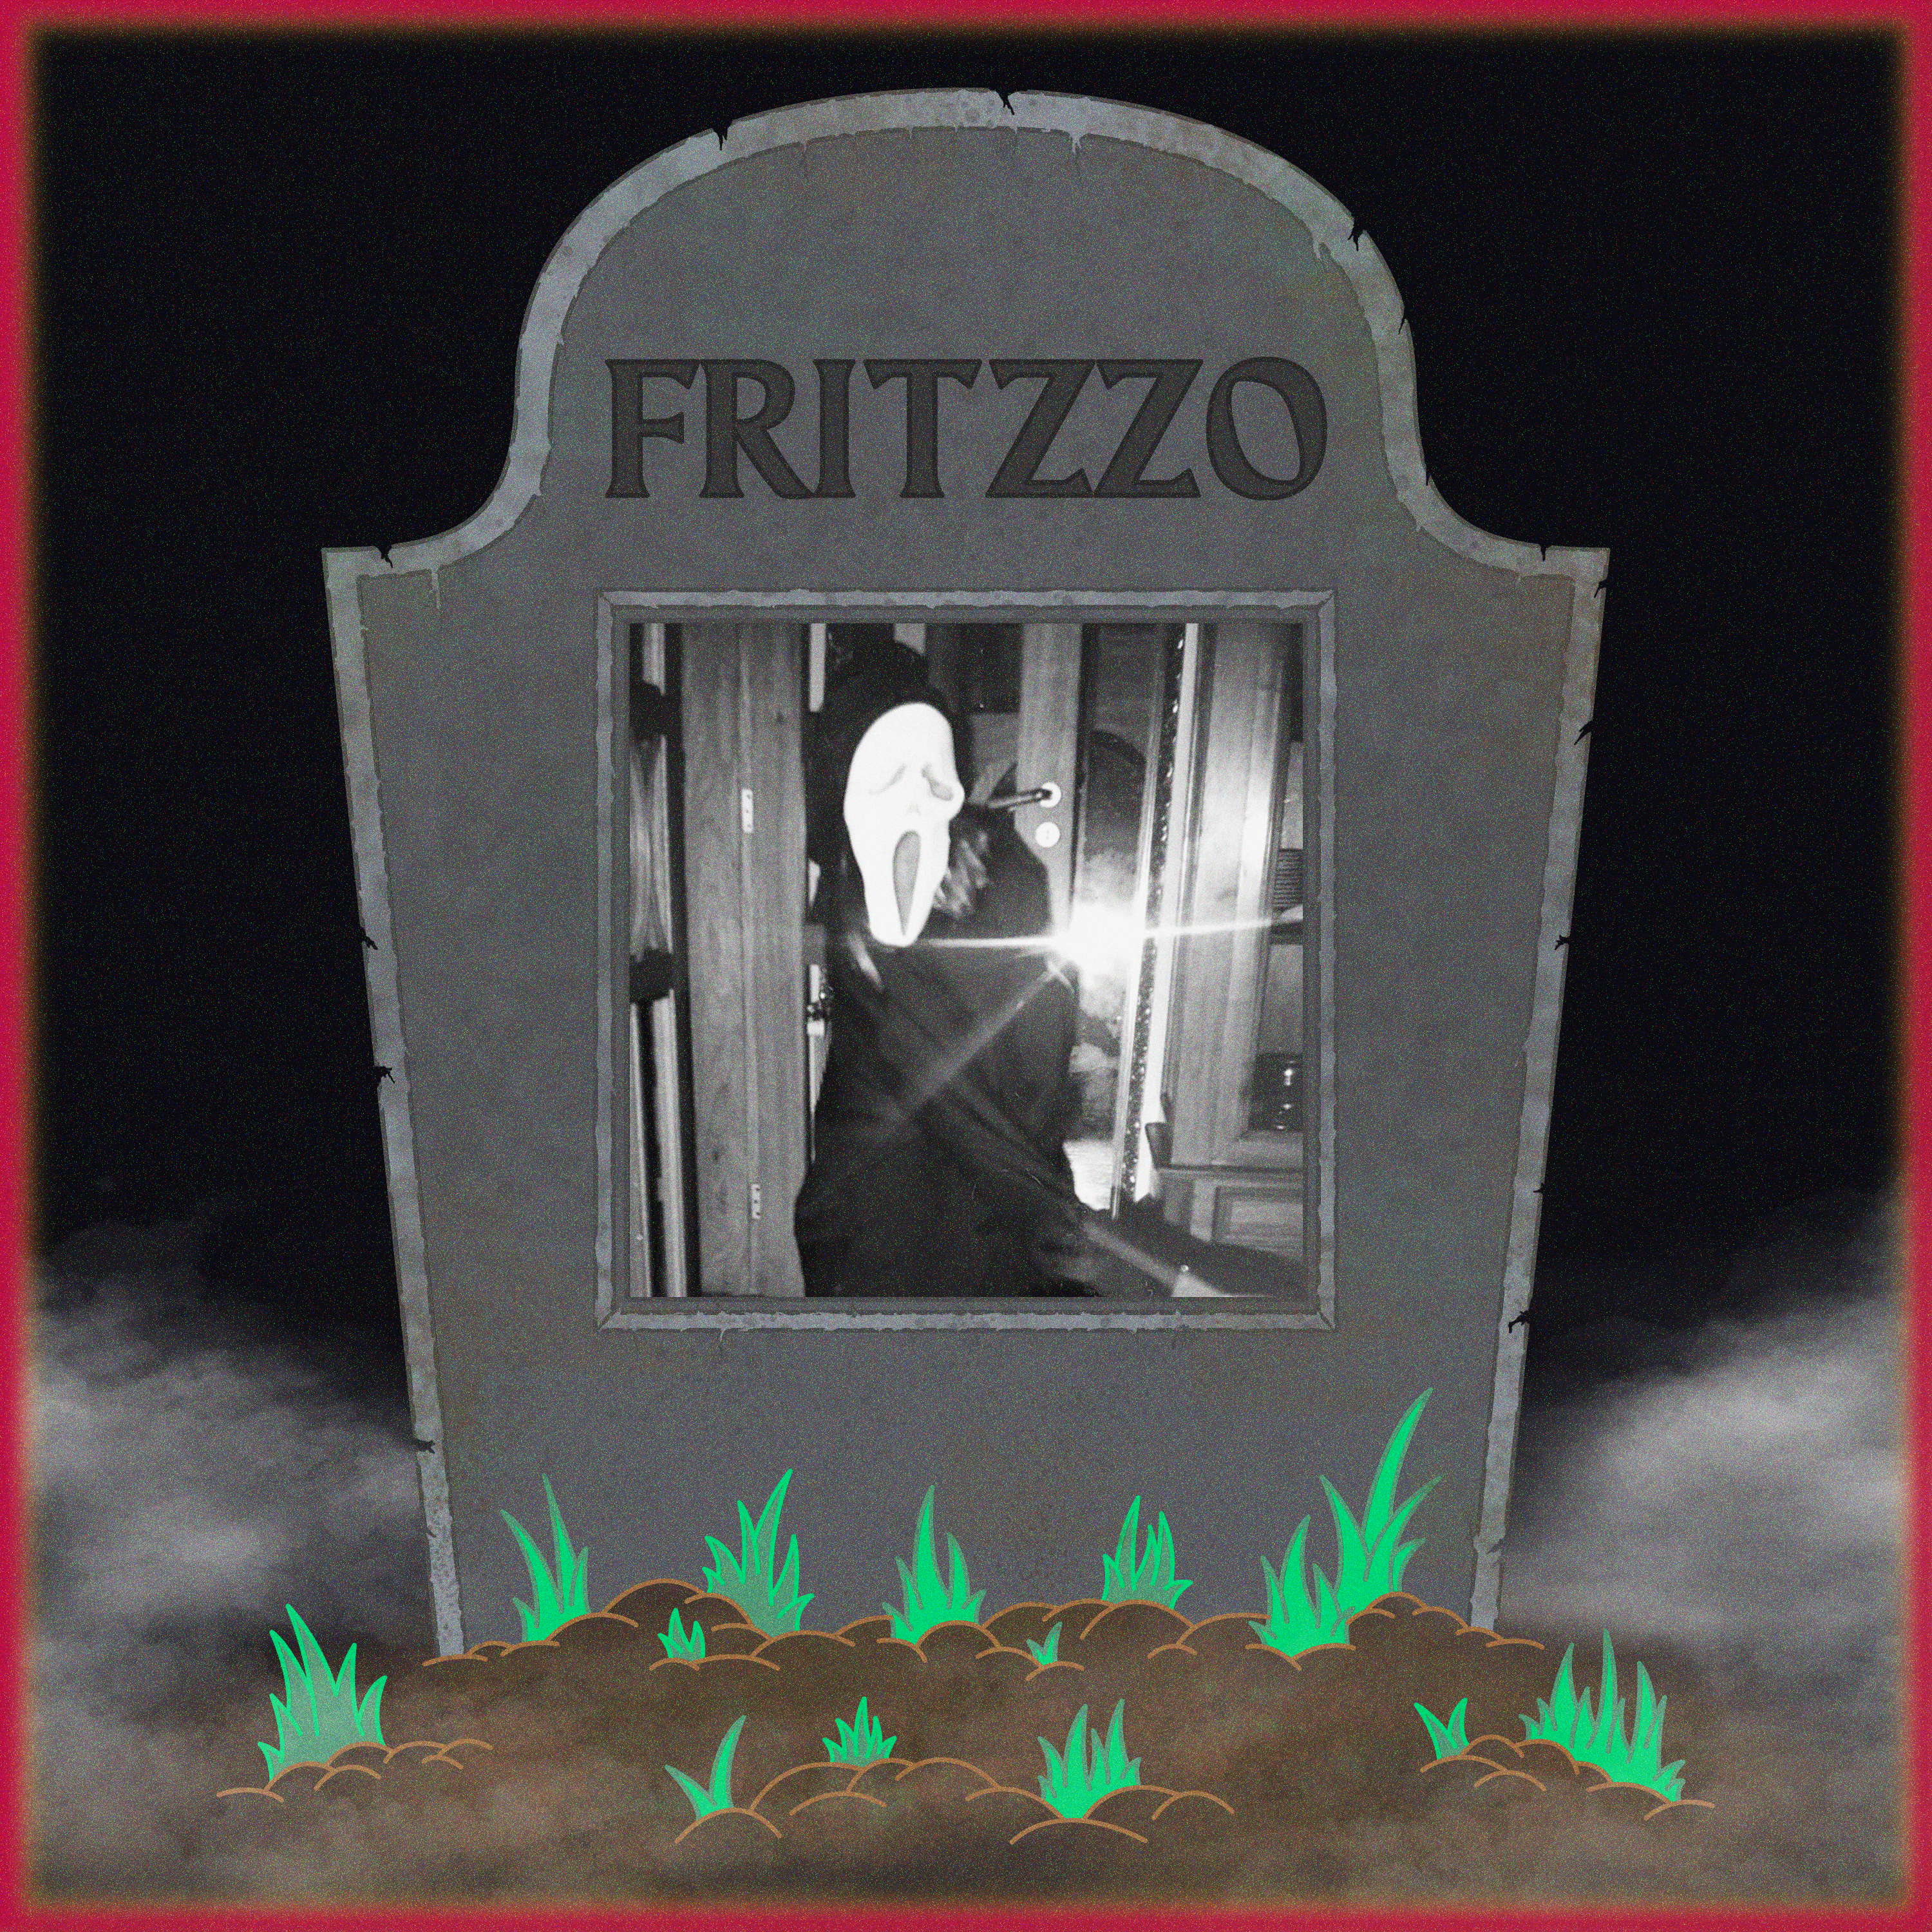 Fritzzo